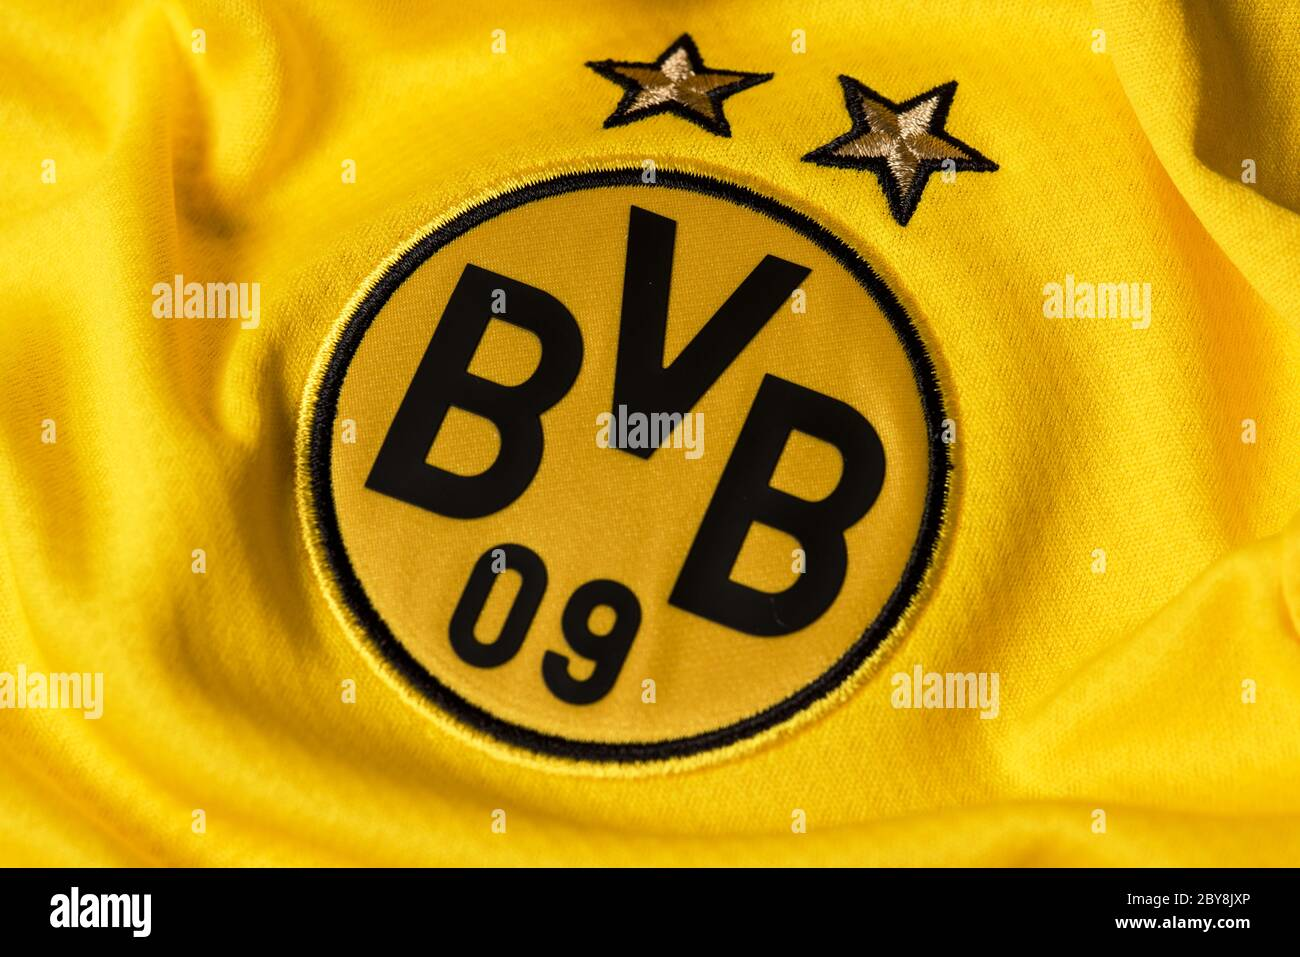 Bvb Logo High Resolution Stock Photography And Images Alamy